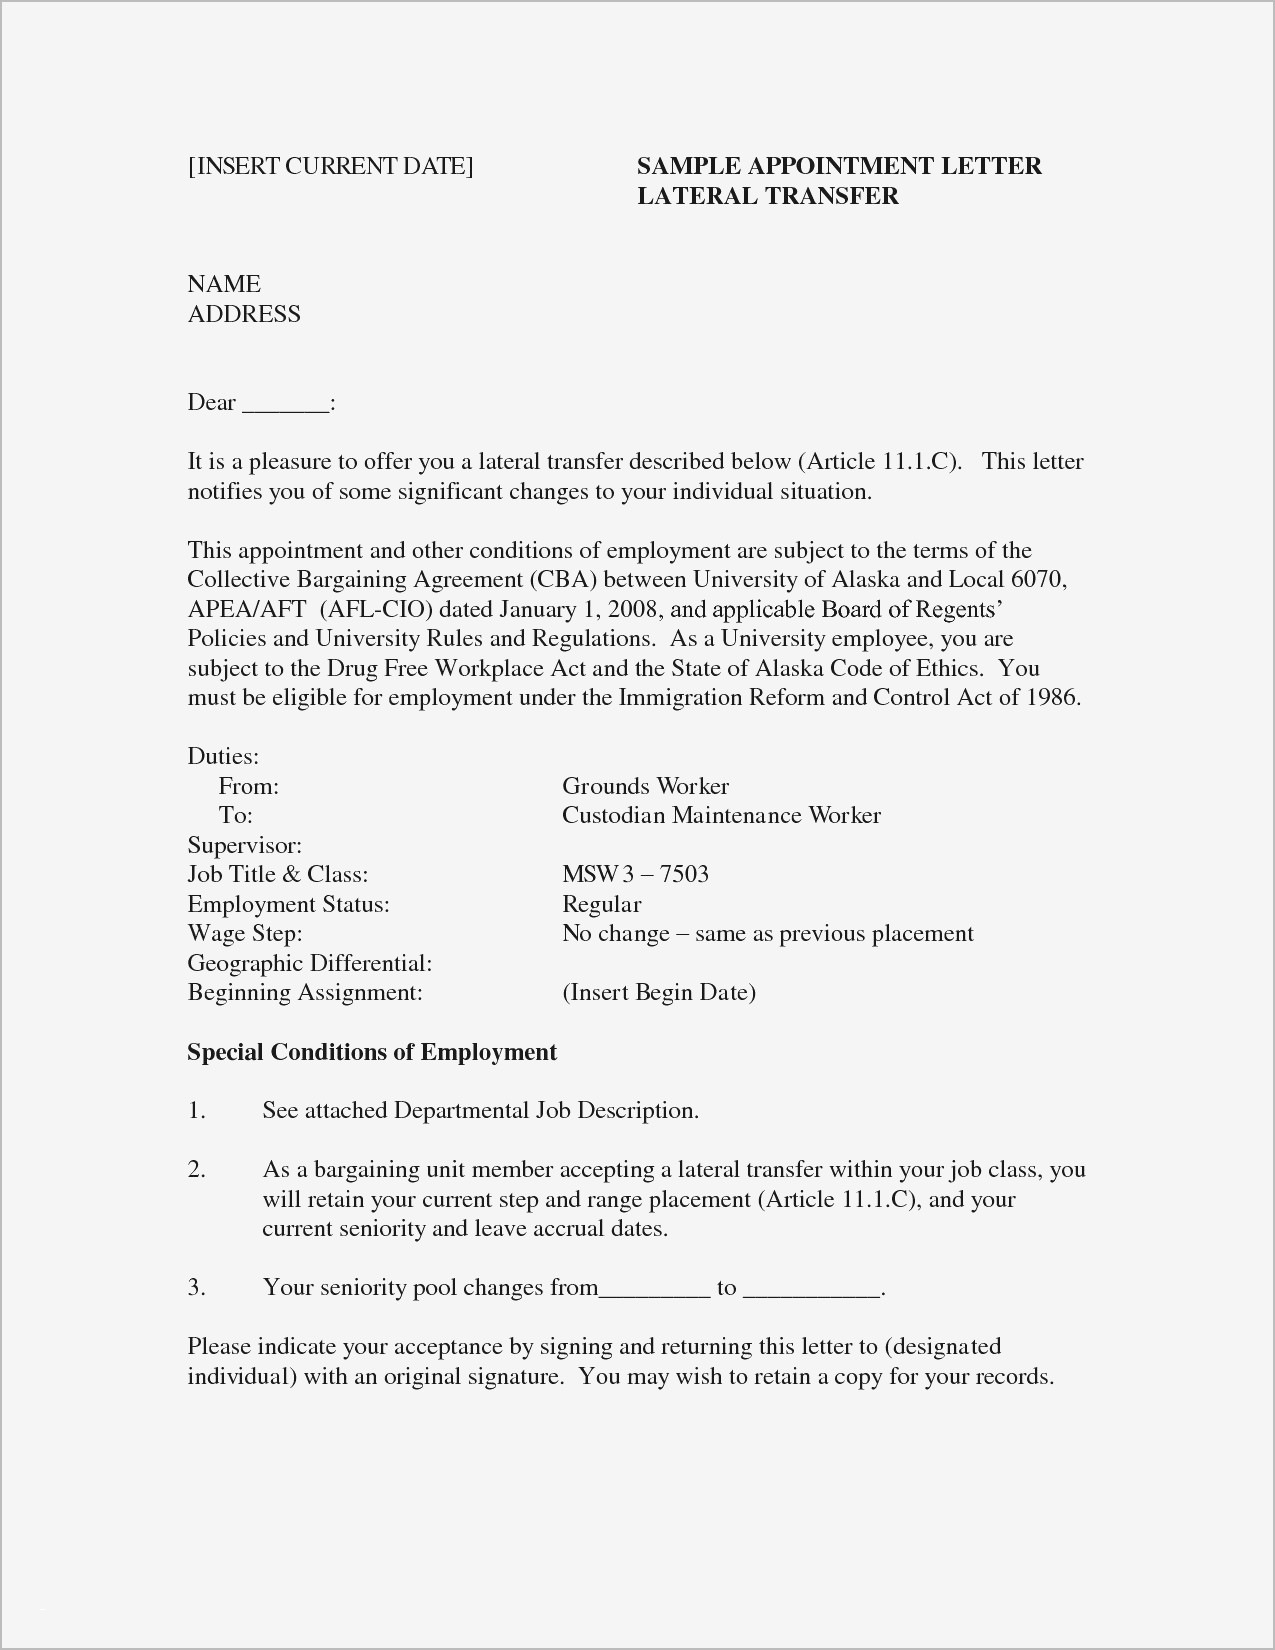 Reference Letter Template Word - Unique Job Reference Letter Template